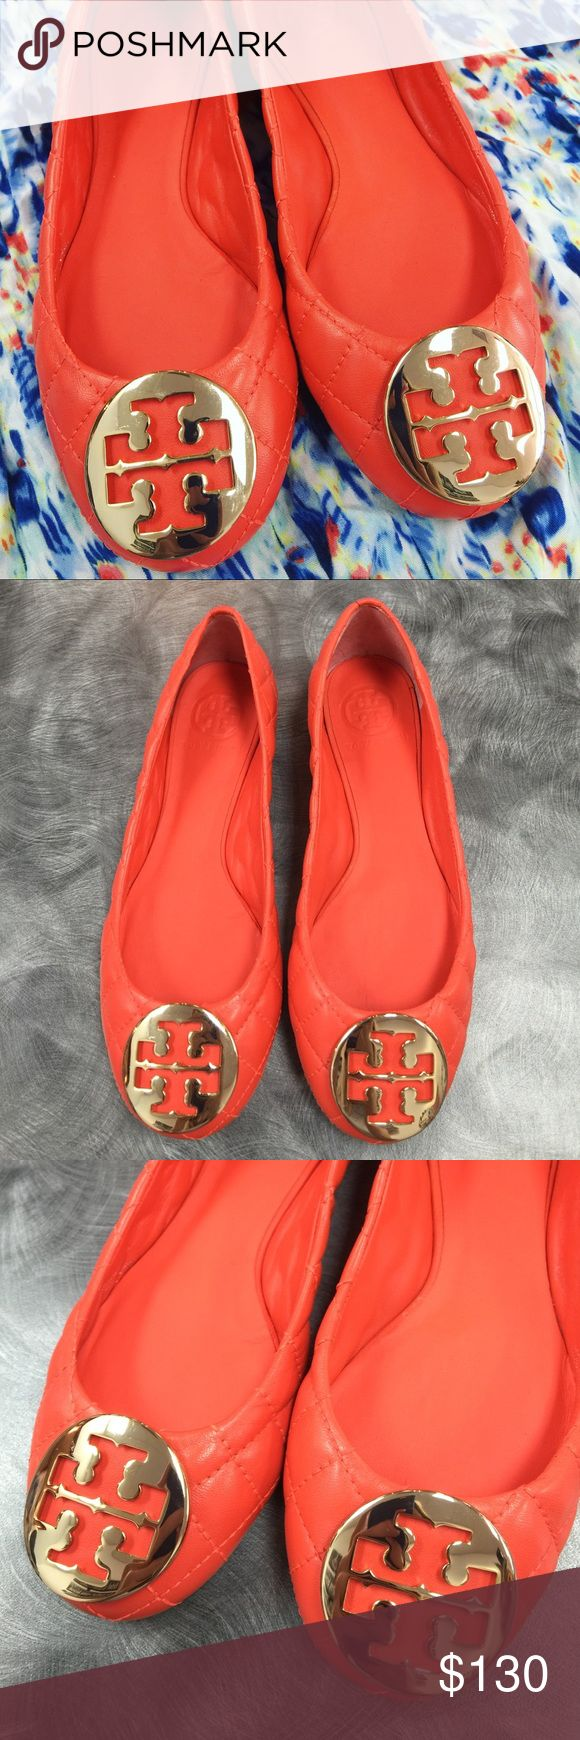 Tory Burch Orange Minnie Ballet Flats Leather In brand new condition! They were worn once but don't look worn. There is no scratches on the emblems. Very clean. Will come with a Tory Burch box. Yes authentic. No trades. Serious offers only please. :) Tory Burch Shoes Flats & Loafers